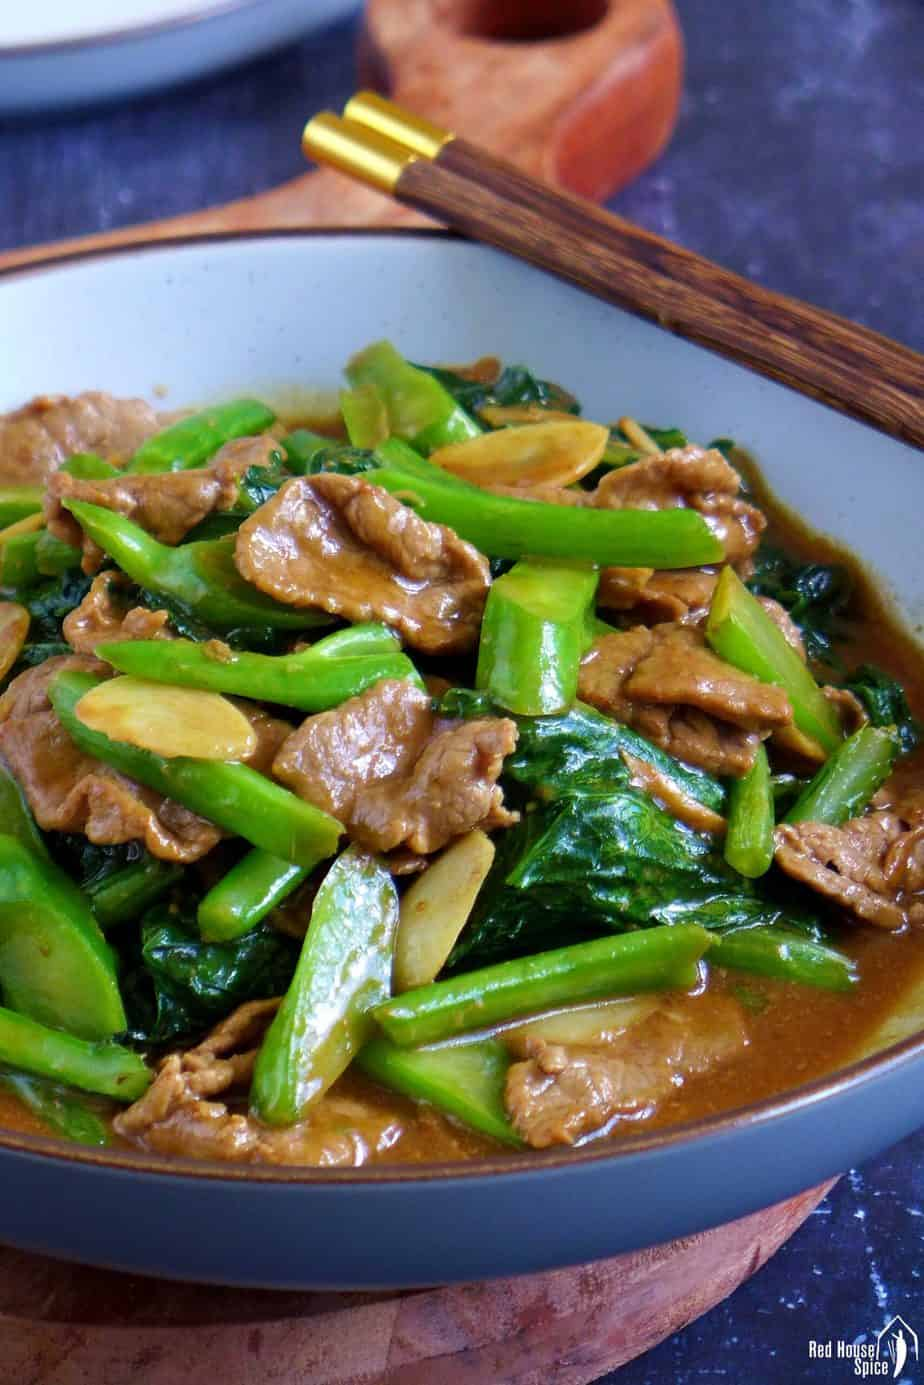 Beef stir-fried with Chinese broccoli